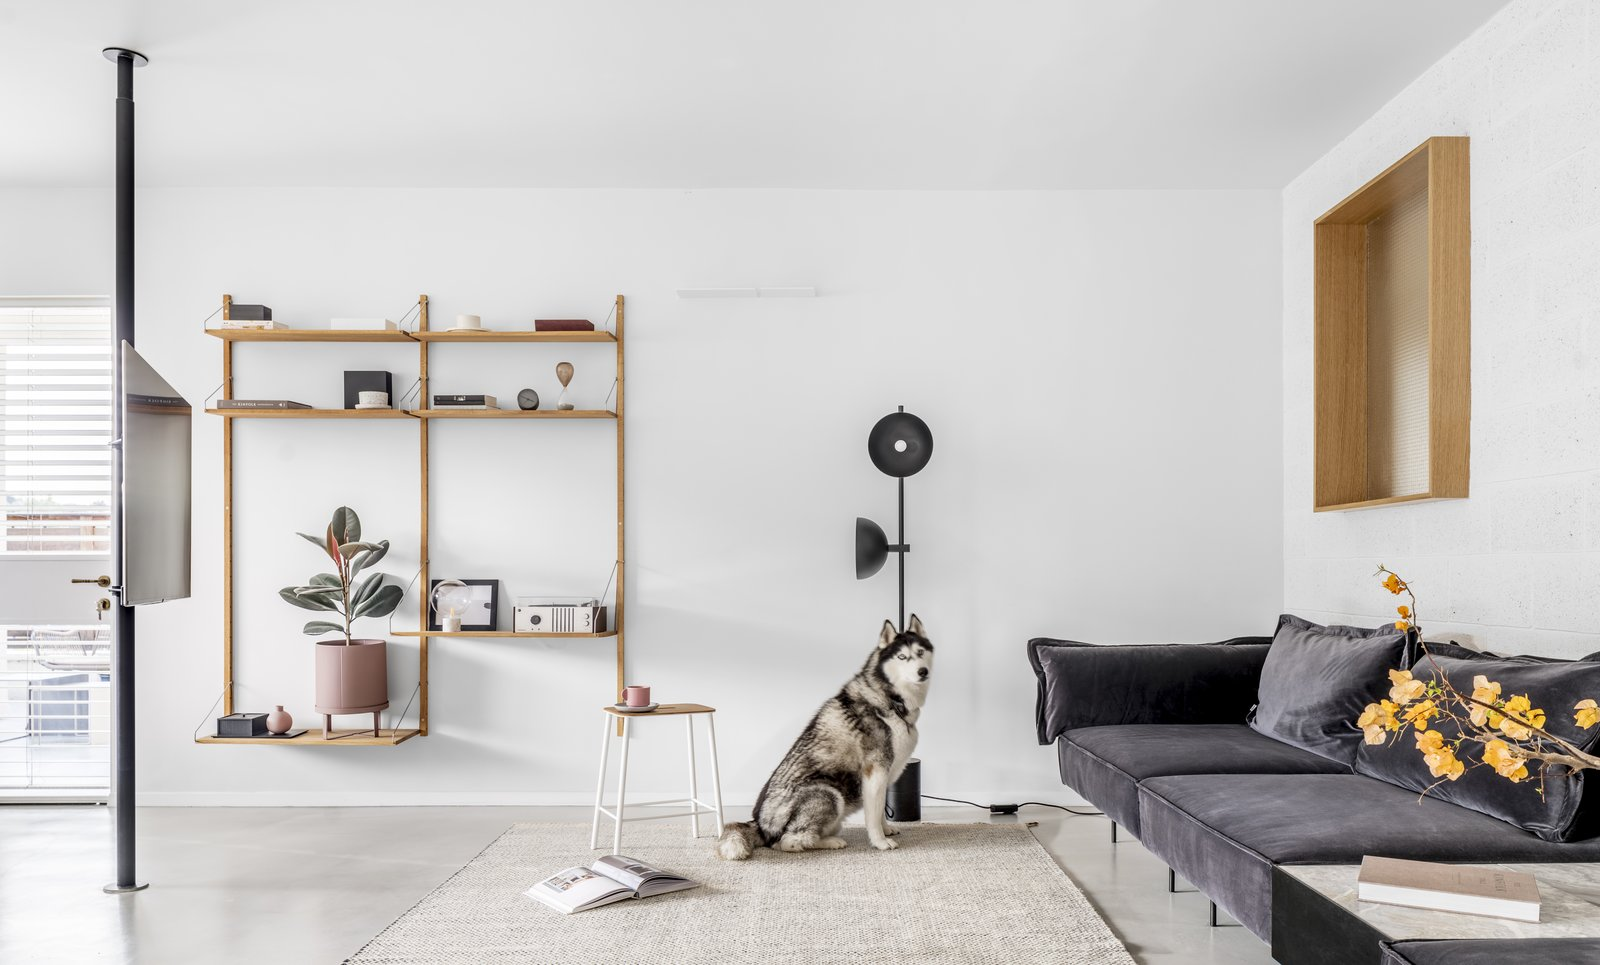 M Apartment minimalist living room with dog